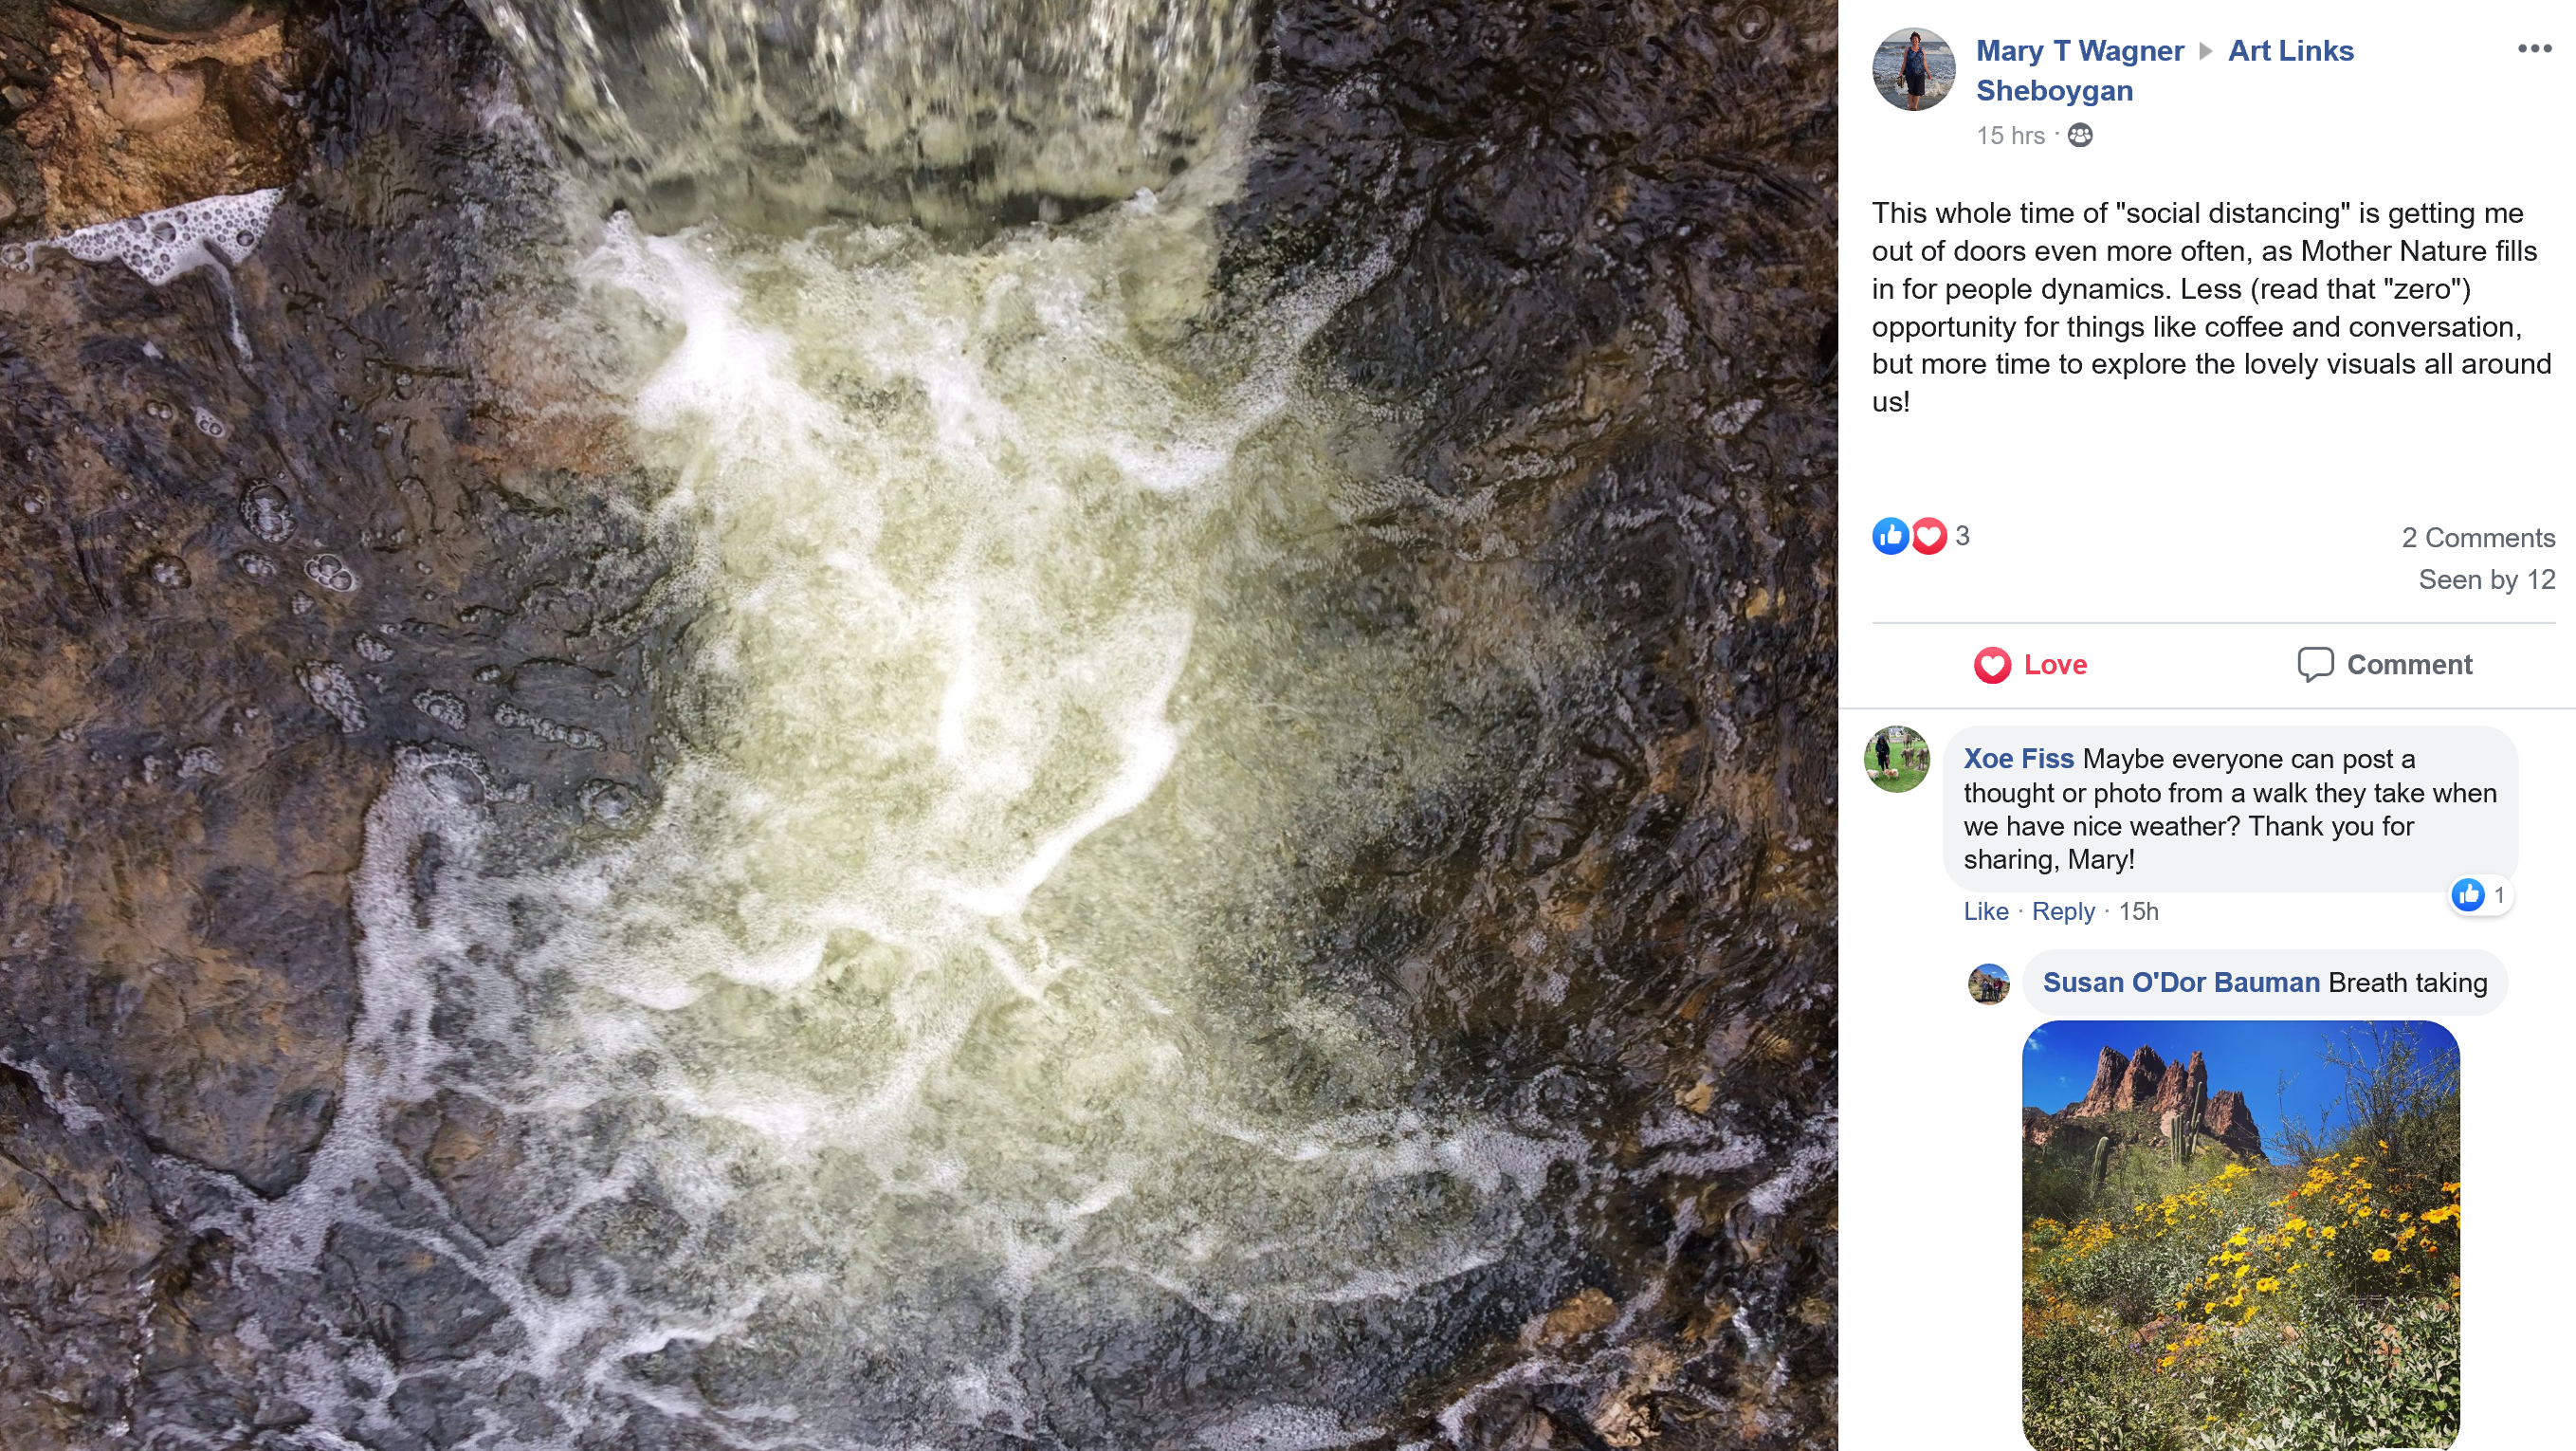 Screenshot of a Facebook group where program participants are sharing their photos of nature walks with reflections on the experience of social distancing